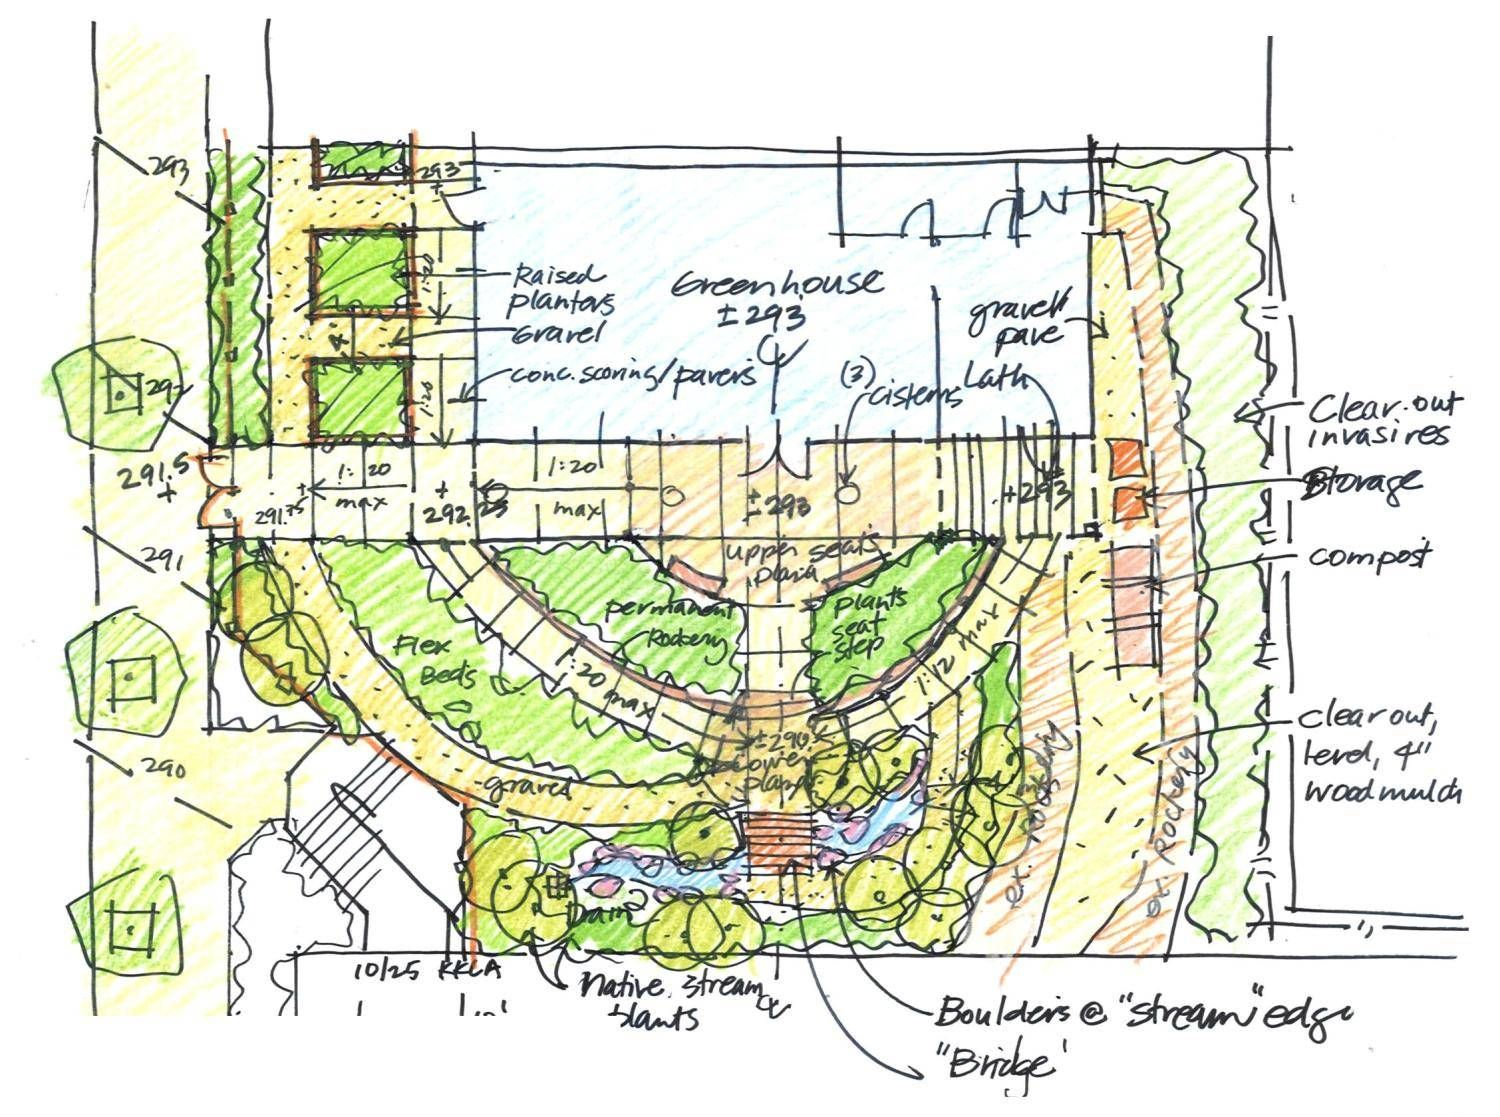 How To Draw Architectural Landscape Design Drawing Landscape Design Drawings Landscape Design Plans Landscape Design Diy